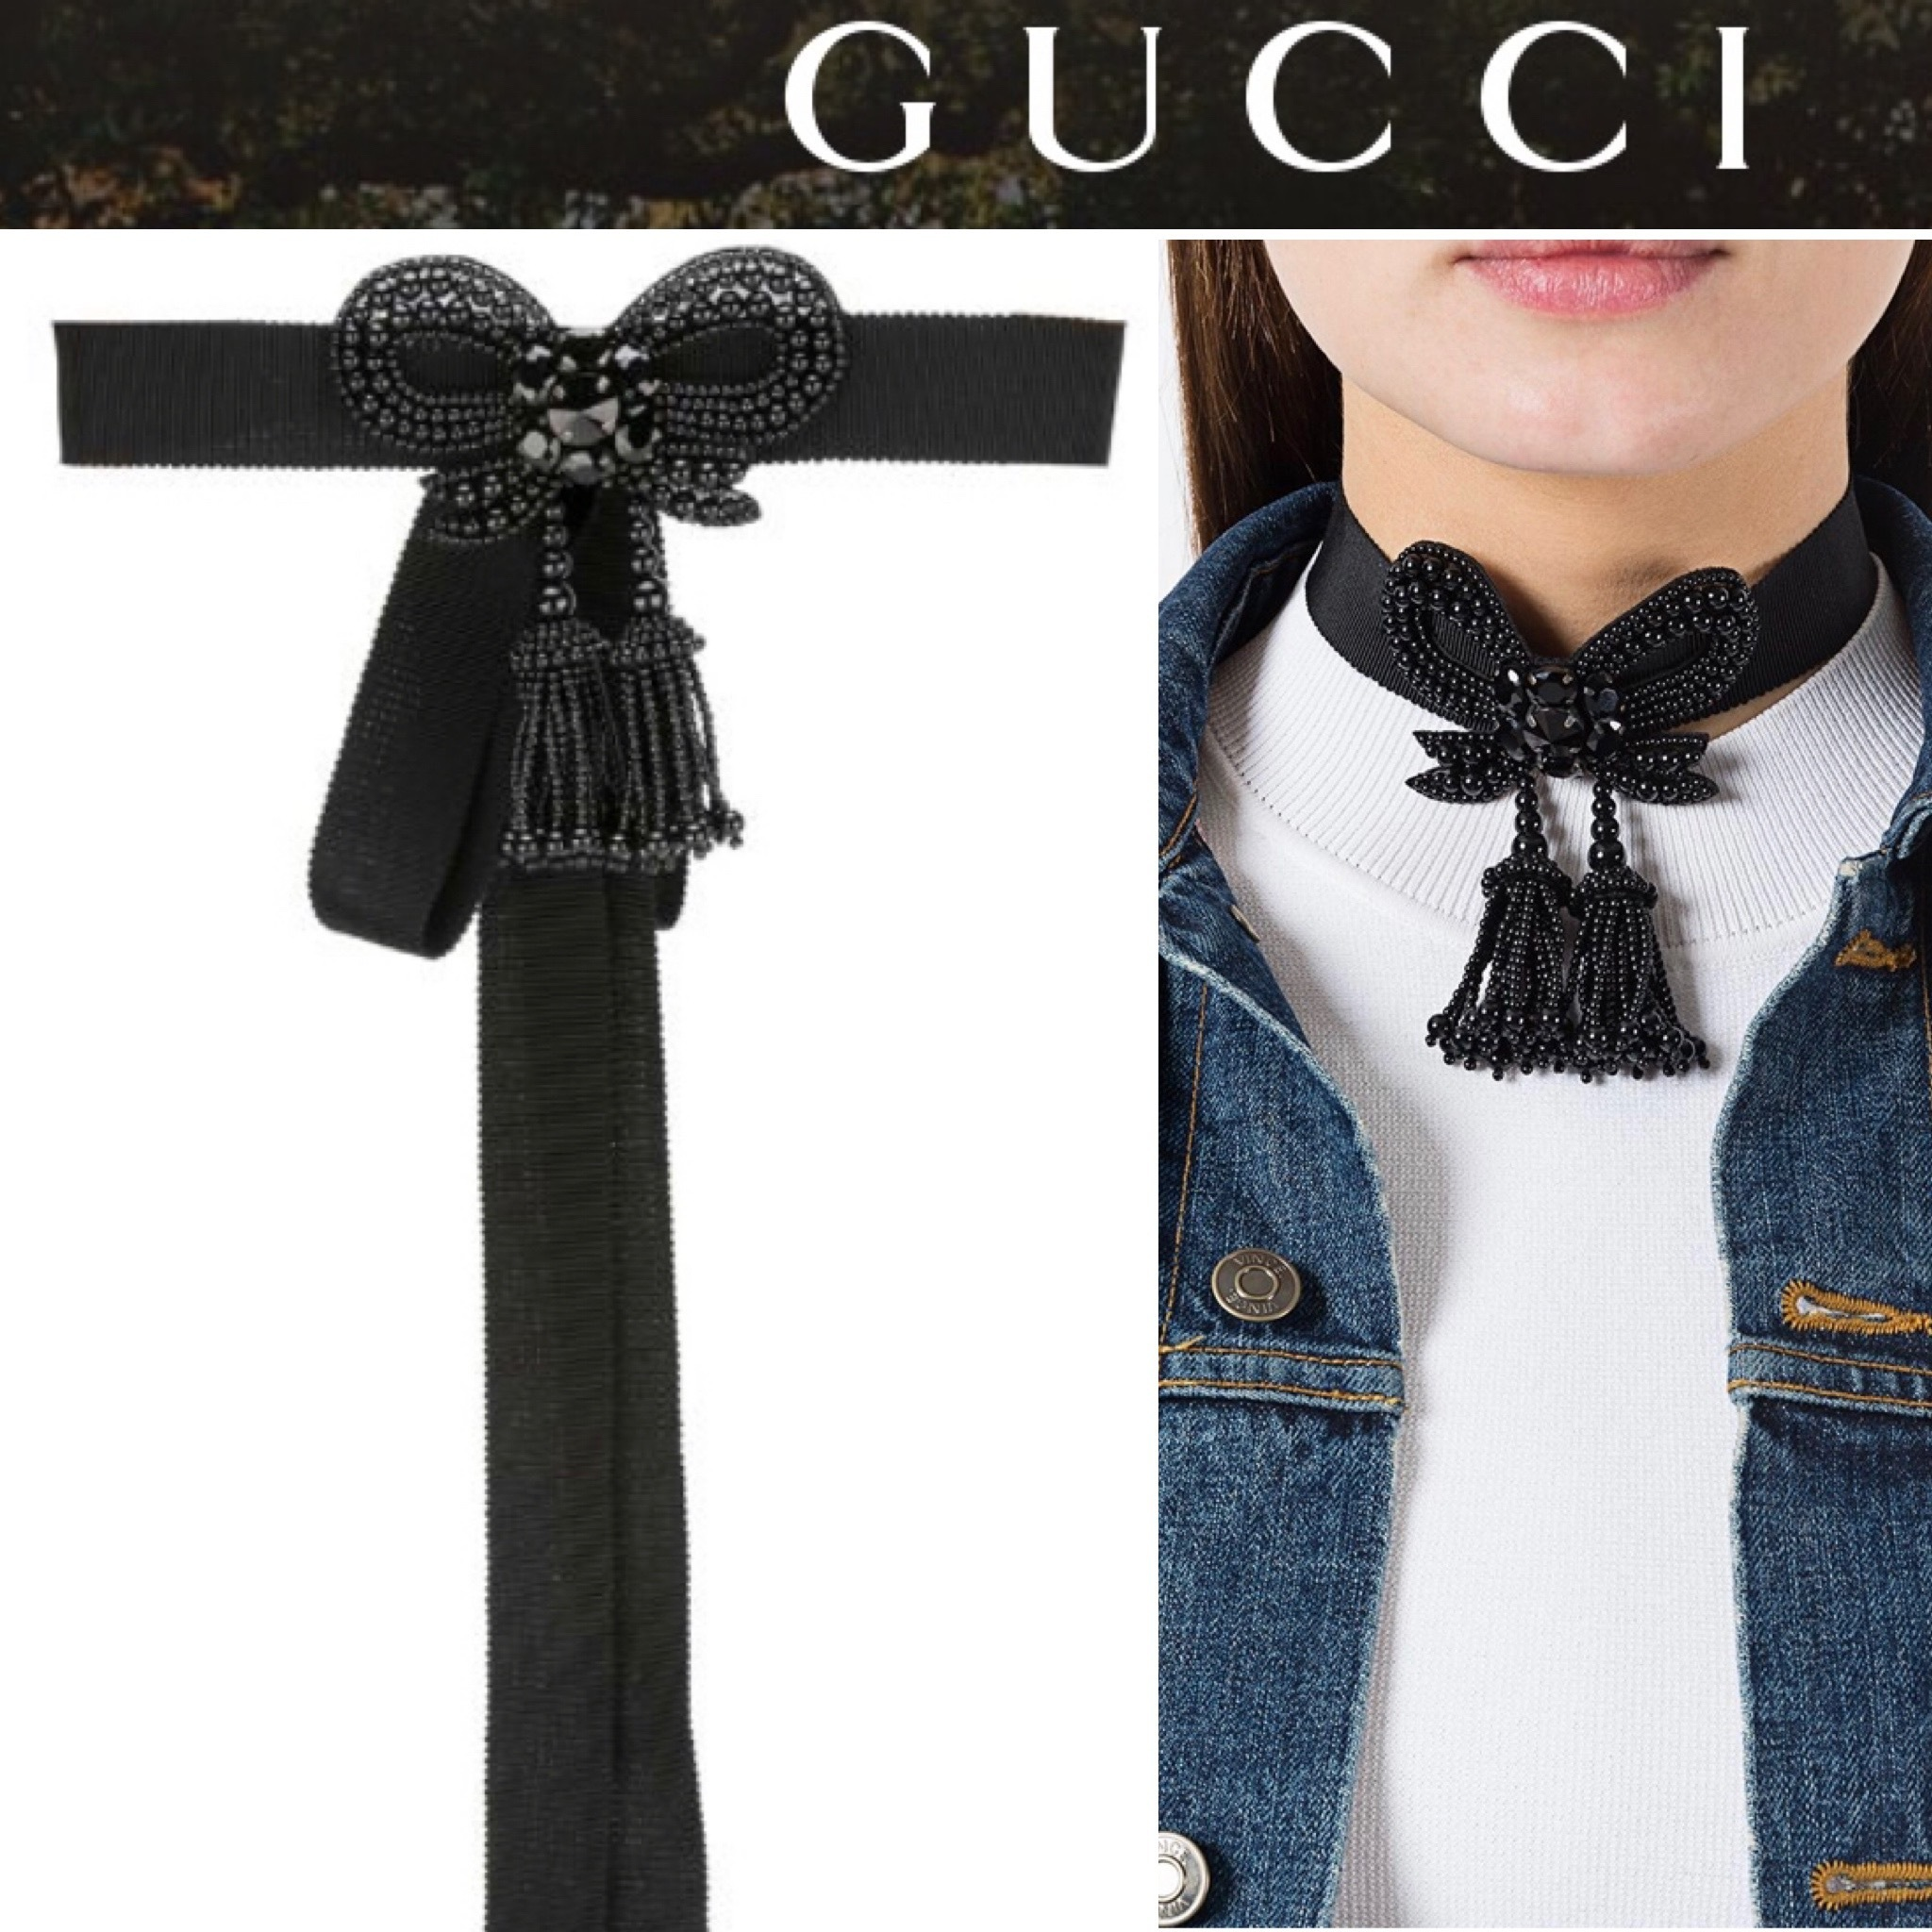 GUCCI☆ビーズリボンチョーカー Beaded Bow Necklace (GUCCI/ネックレス・ペンダント) 57145857